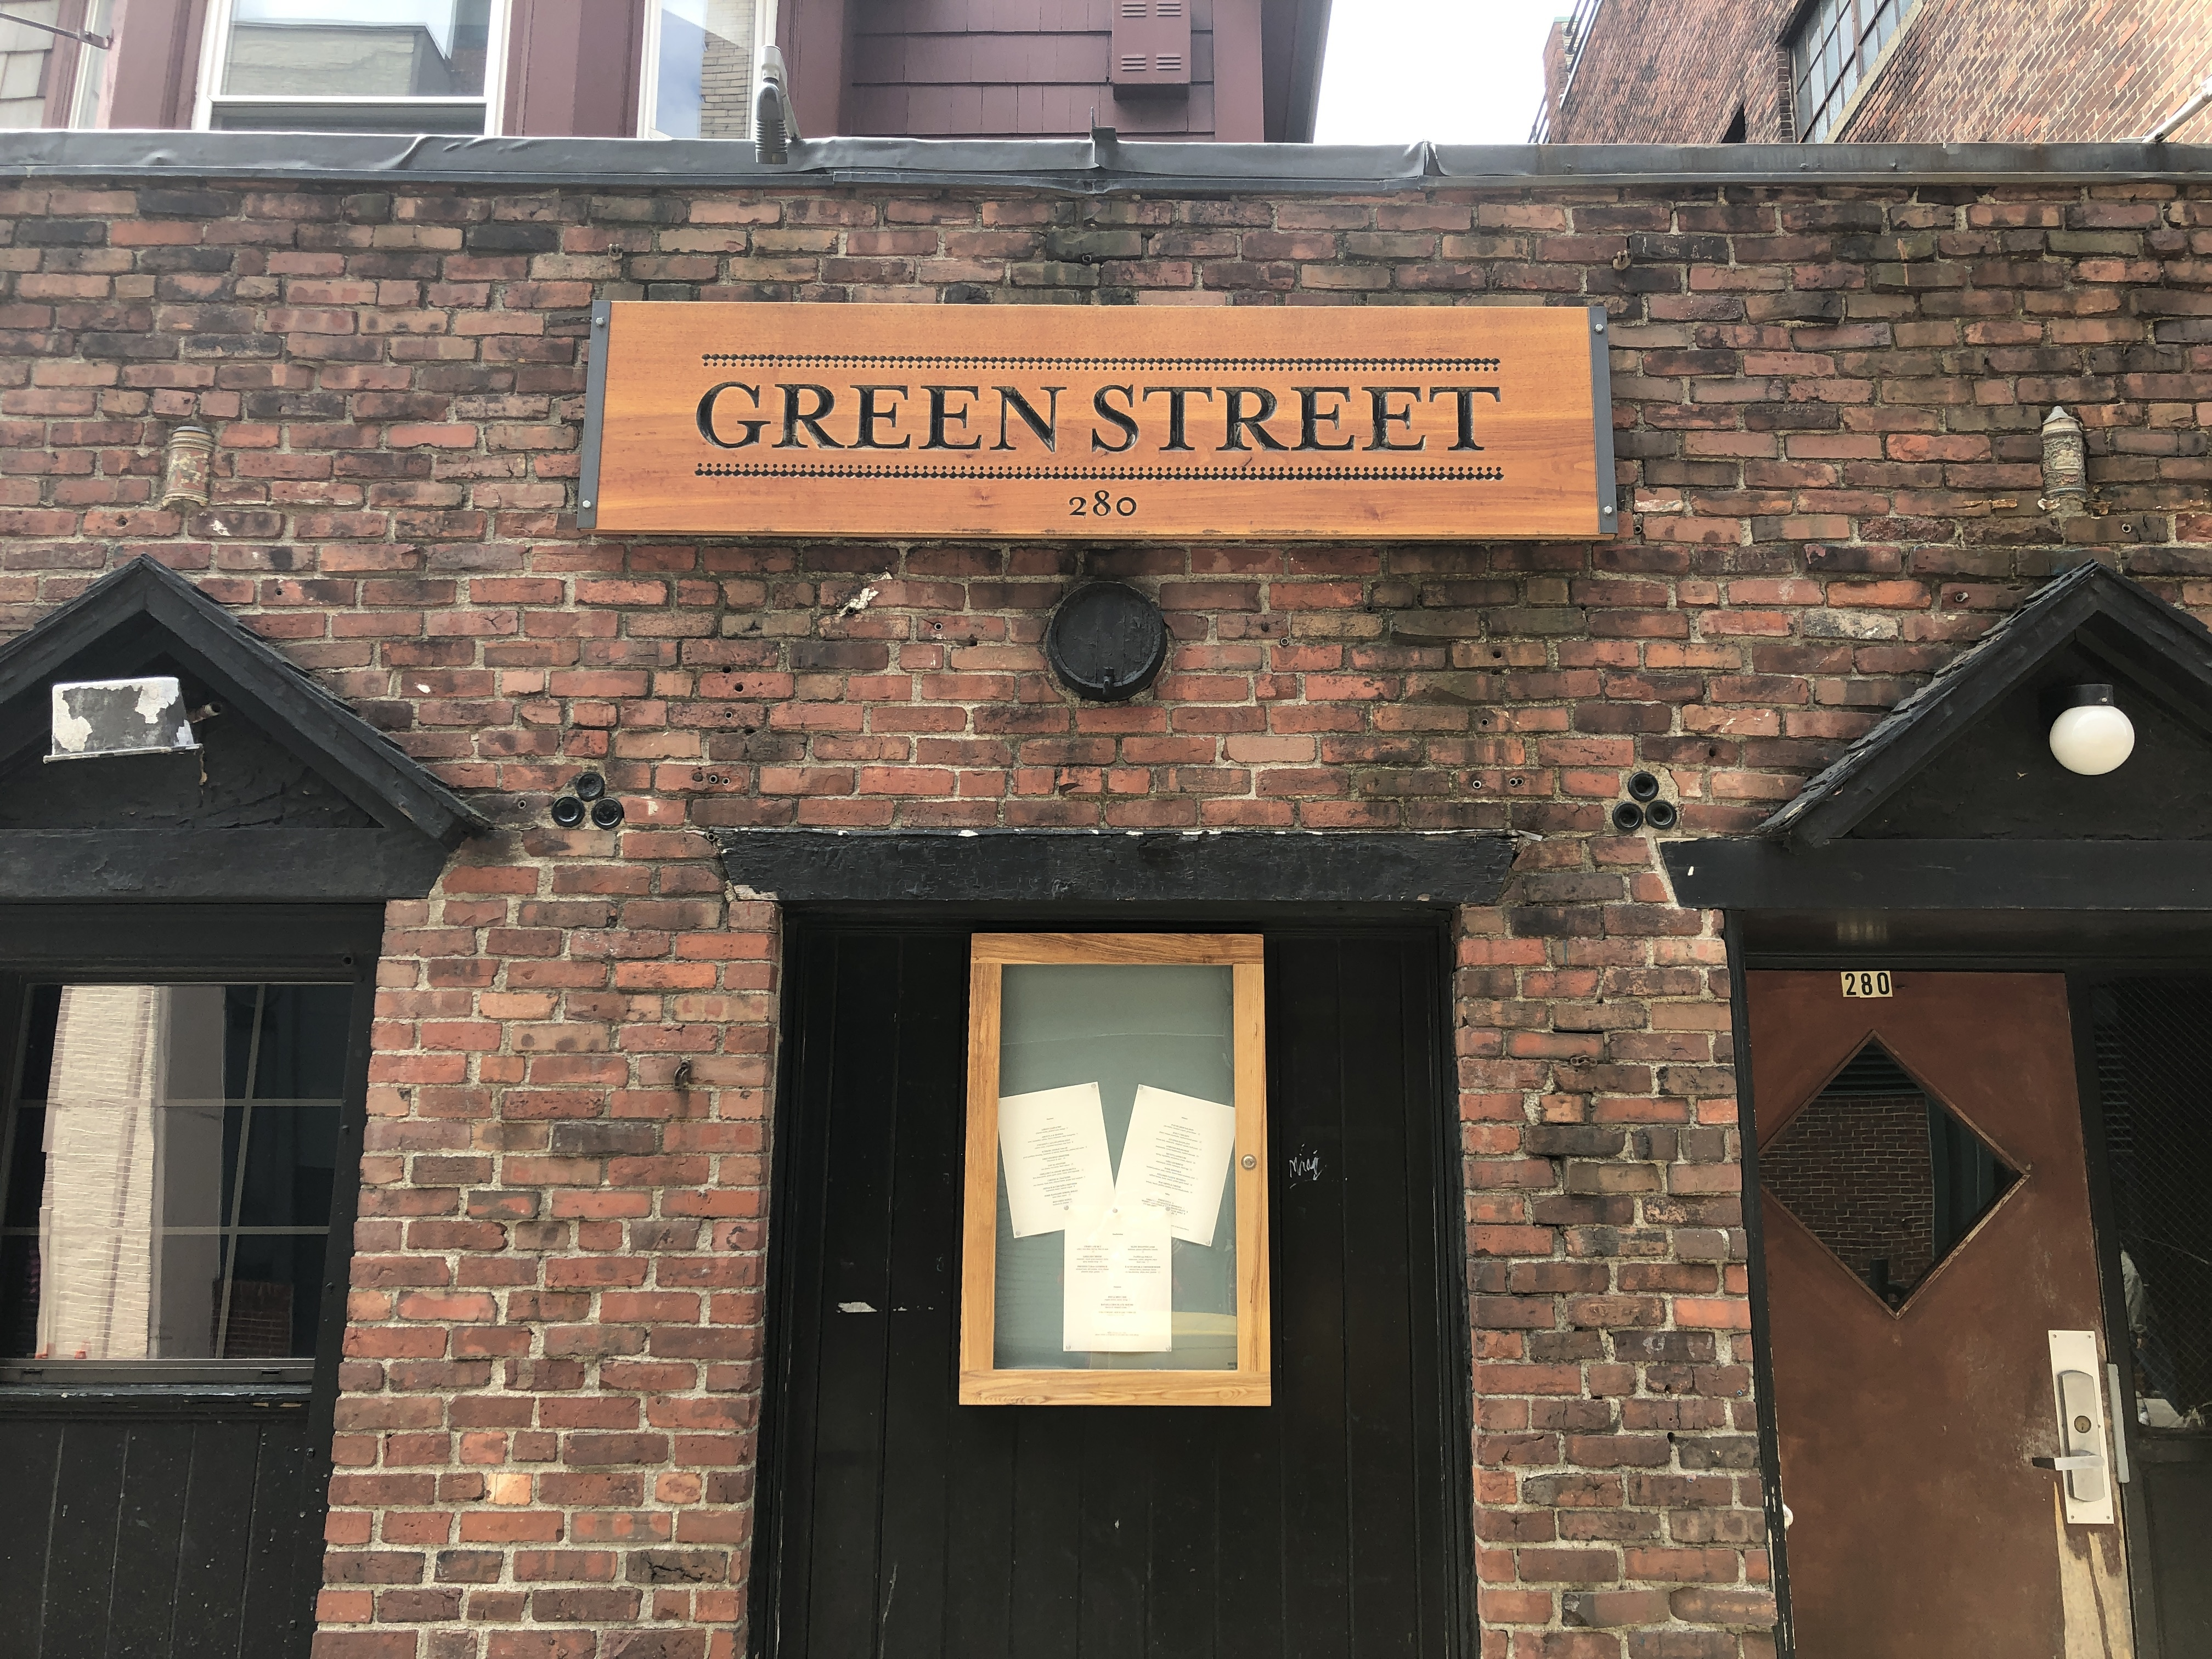 The More Green Street Changes, the More It Stays the Same